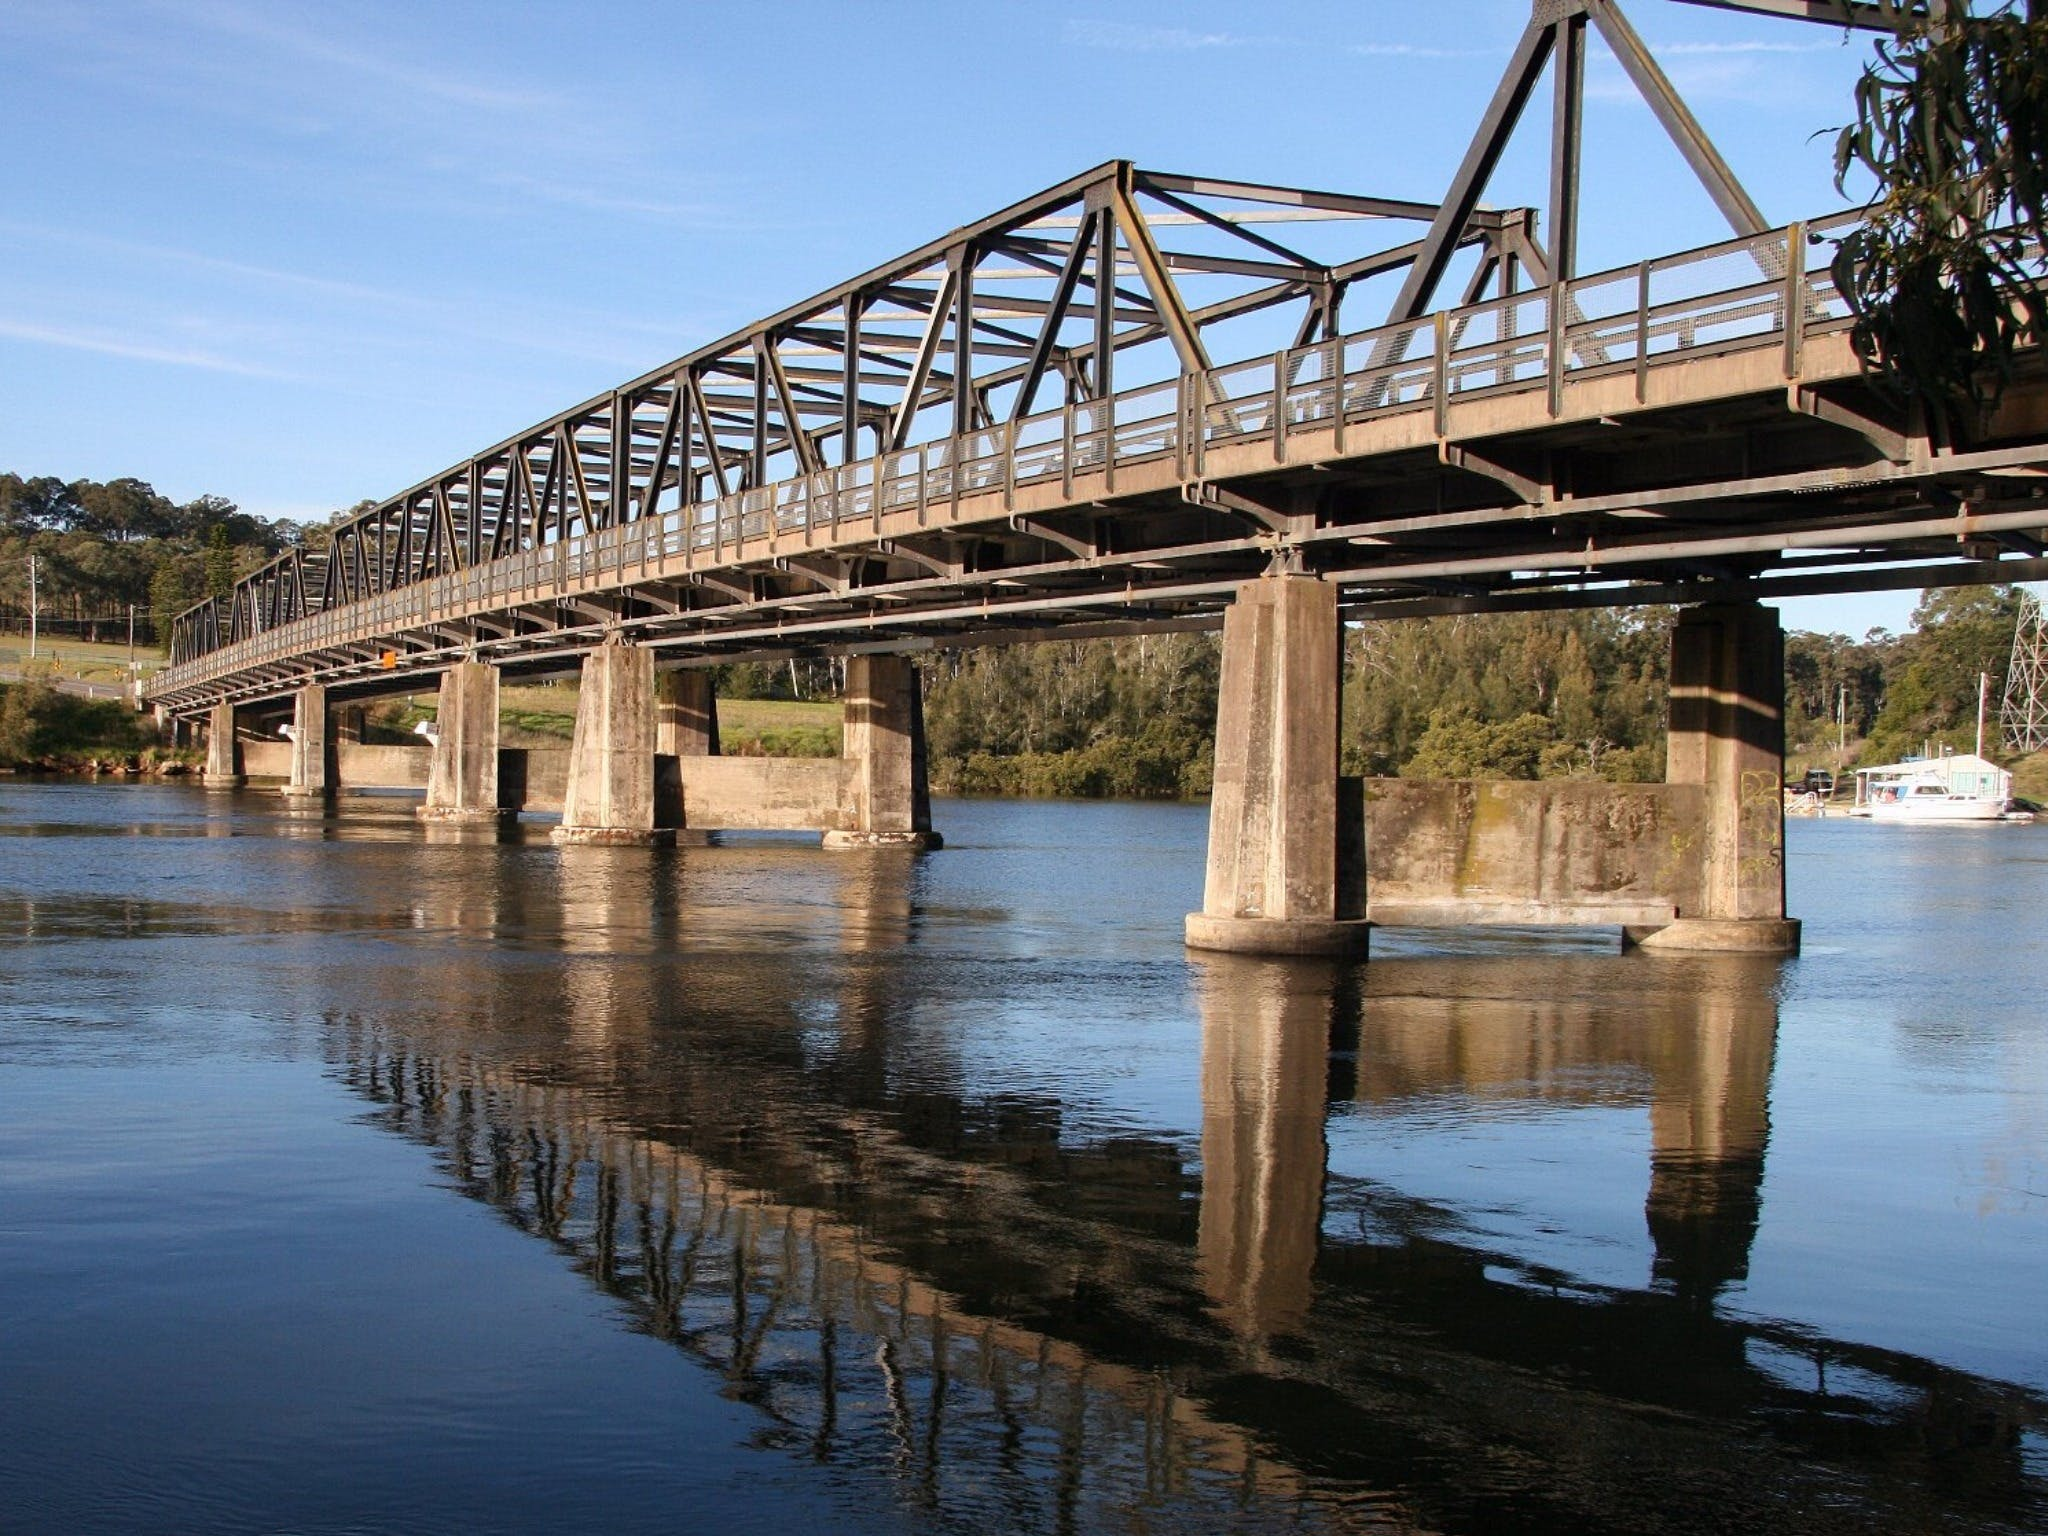 Karuah River - Tourism Brisbane